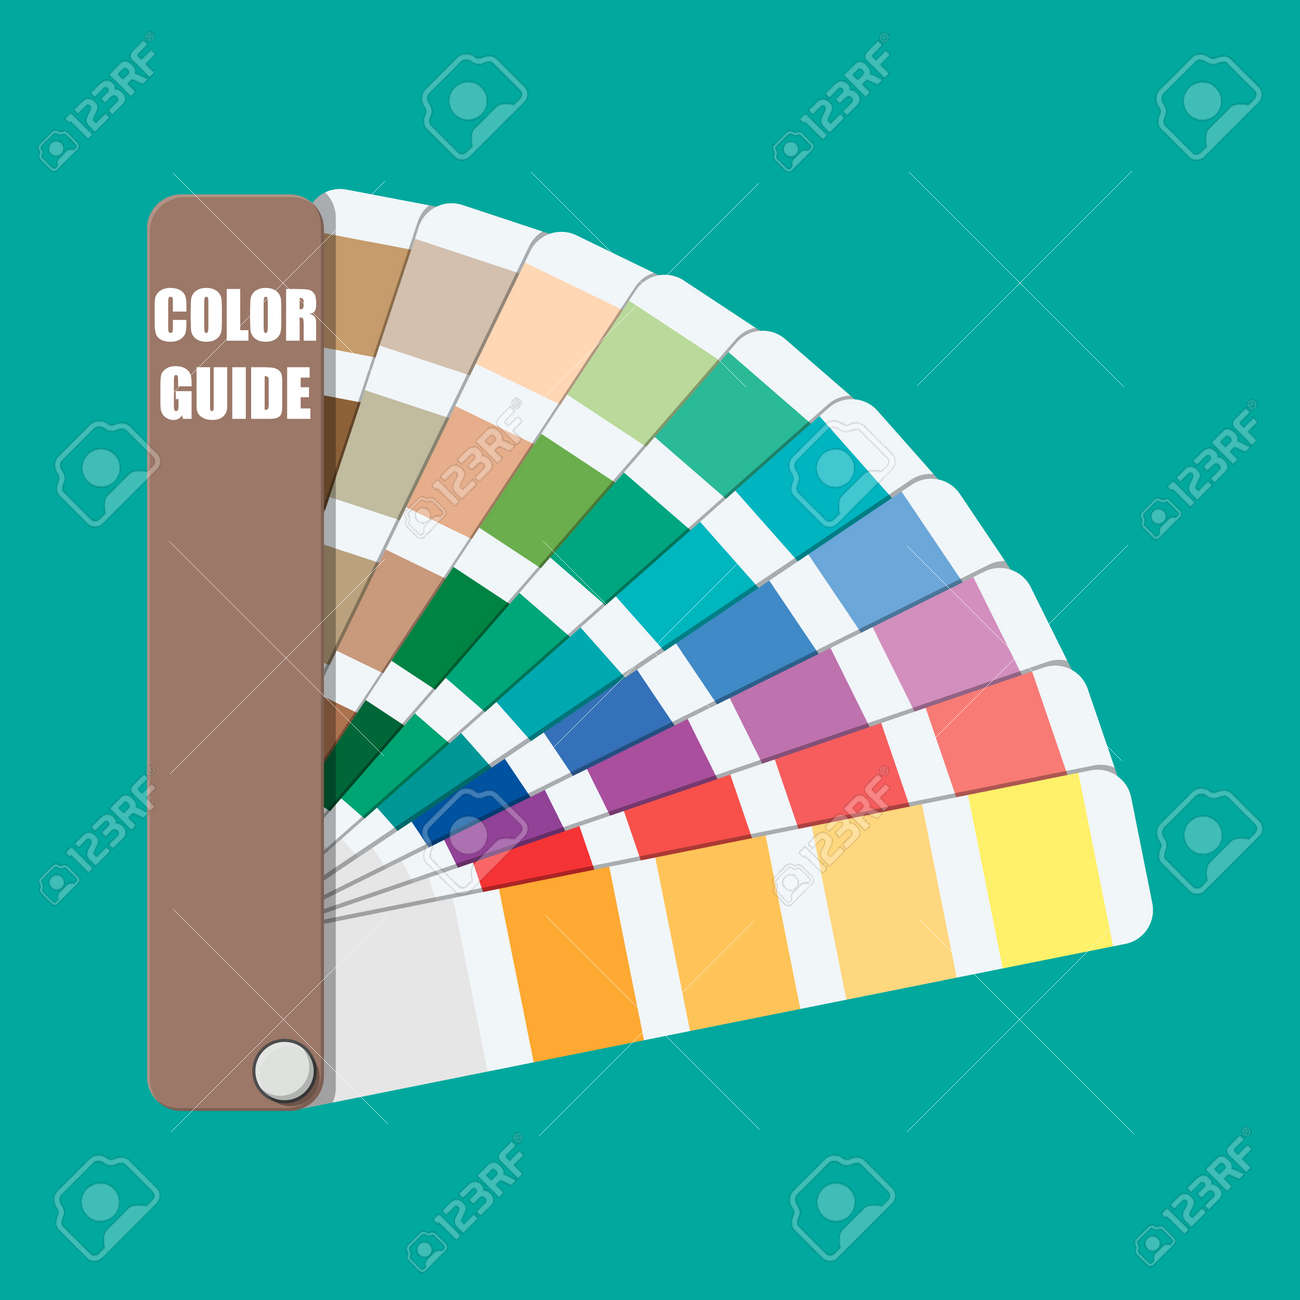 Color Swatch Color Palette Guide Colorful Scale Rainbow Tool Royalty Free Cliparts Vectors And Stock Illustration Image 84229474